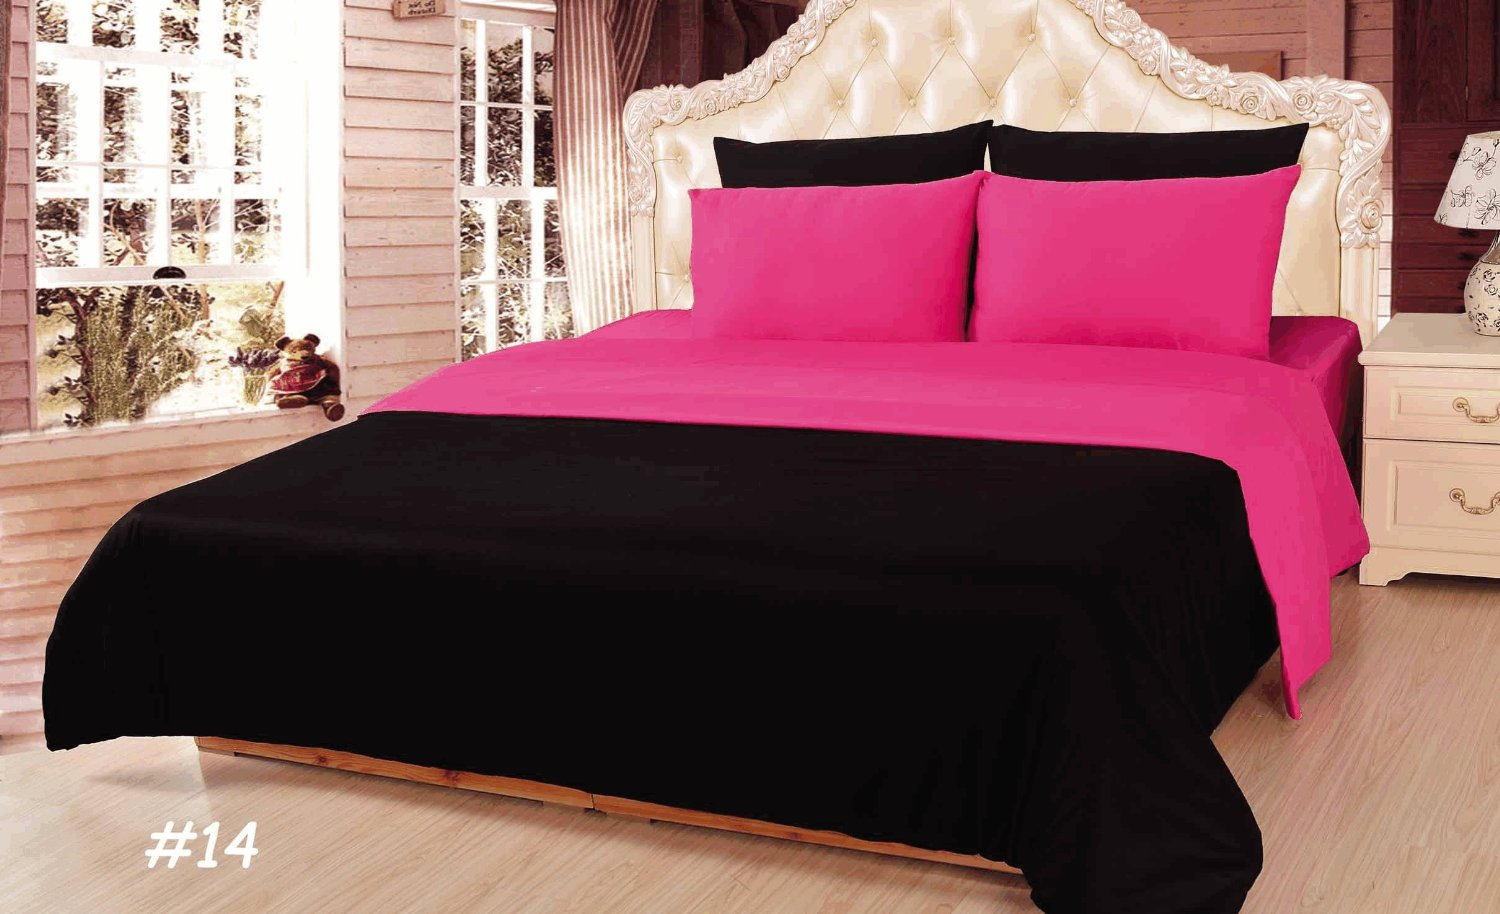 Black and pink bed sheets - Black And Pink Bedspreads 12 Desktop Background Black And Pink Bedspreads 12 Desktop Background